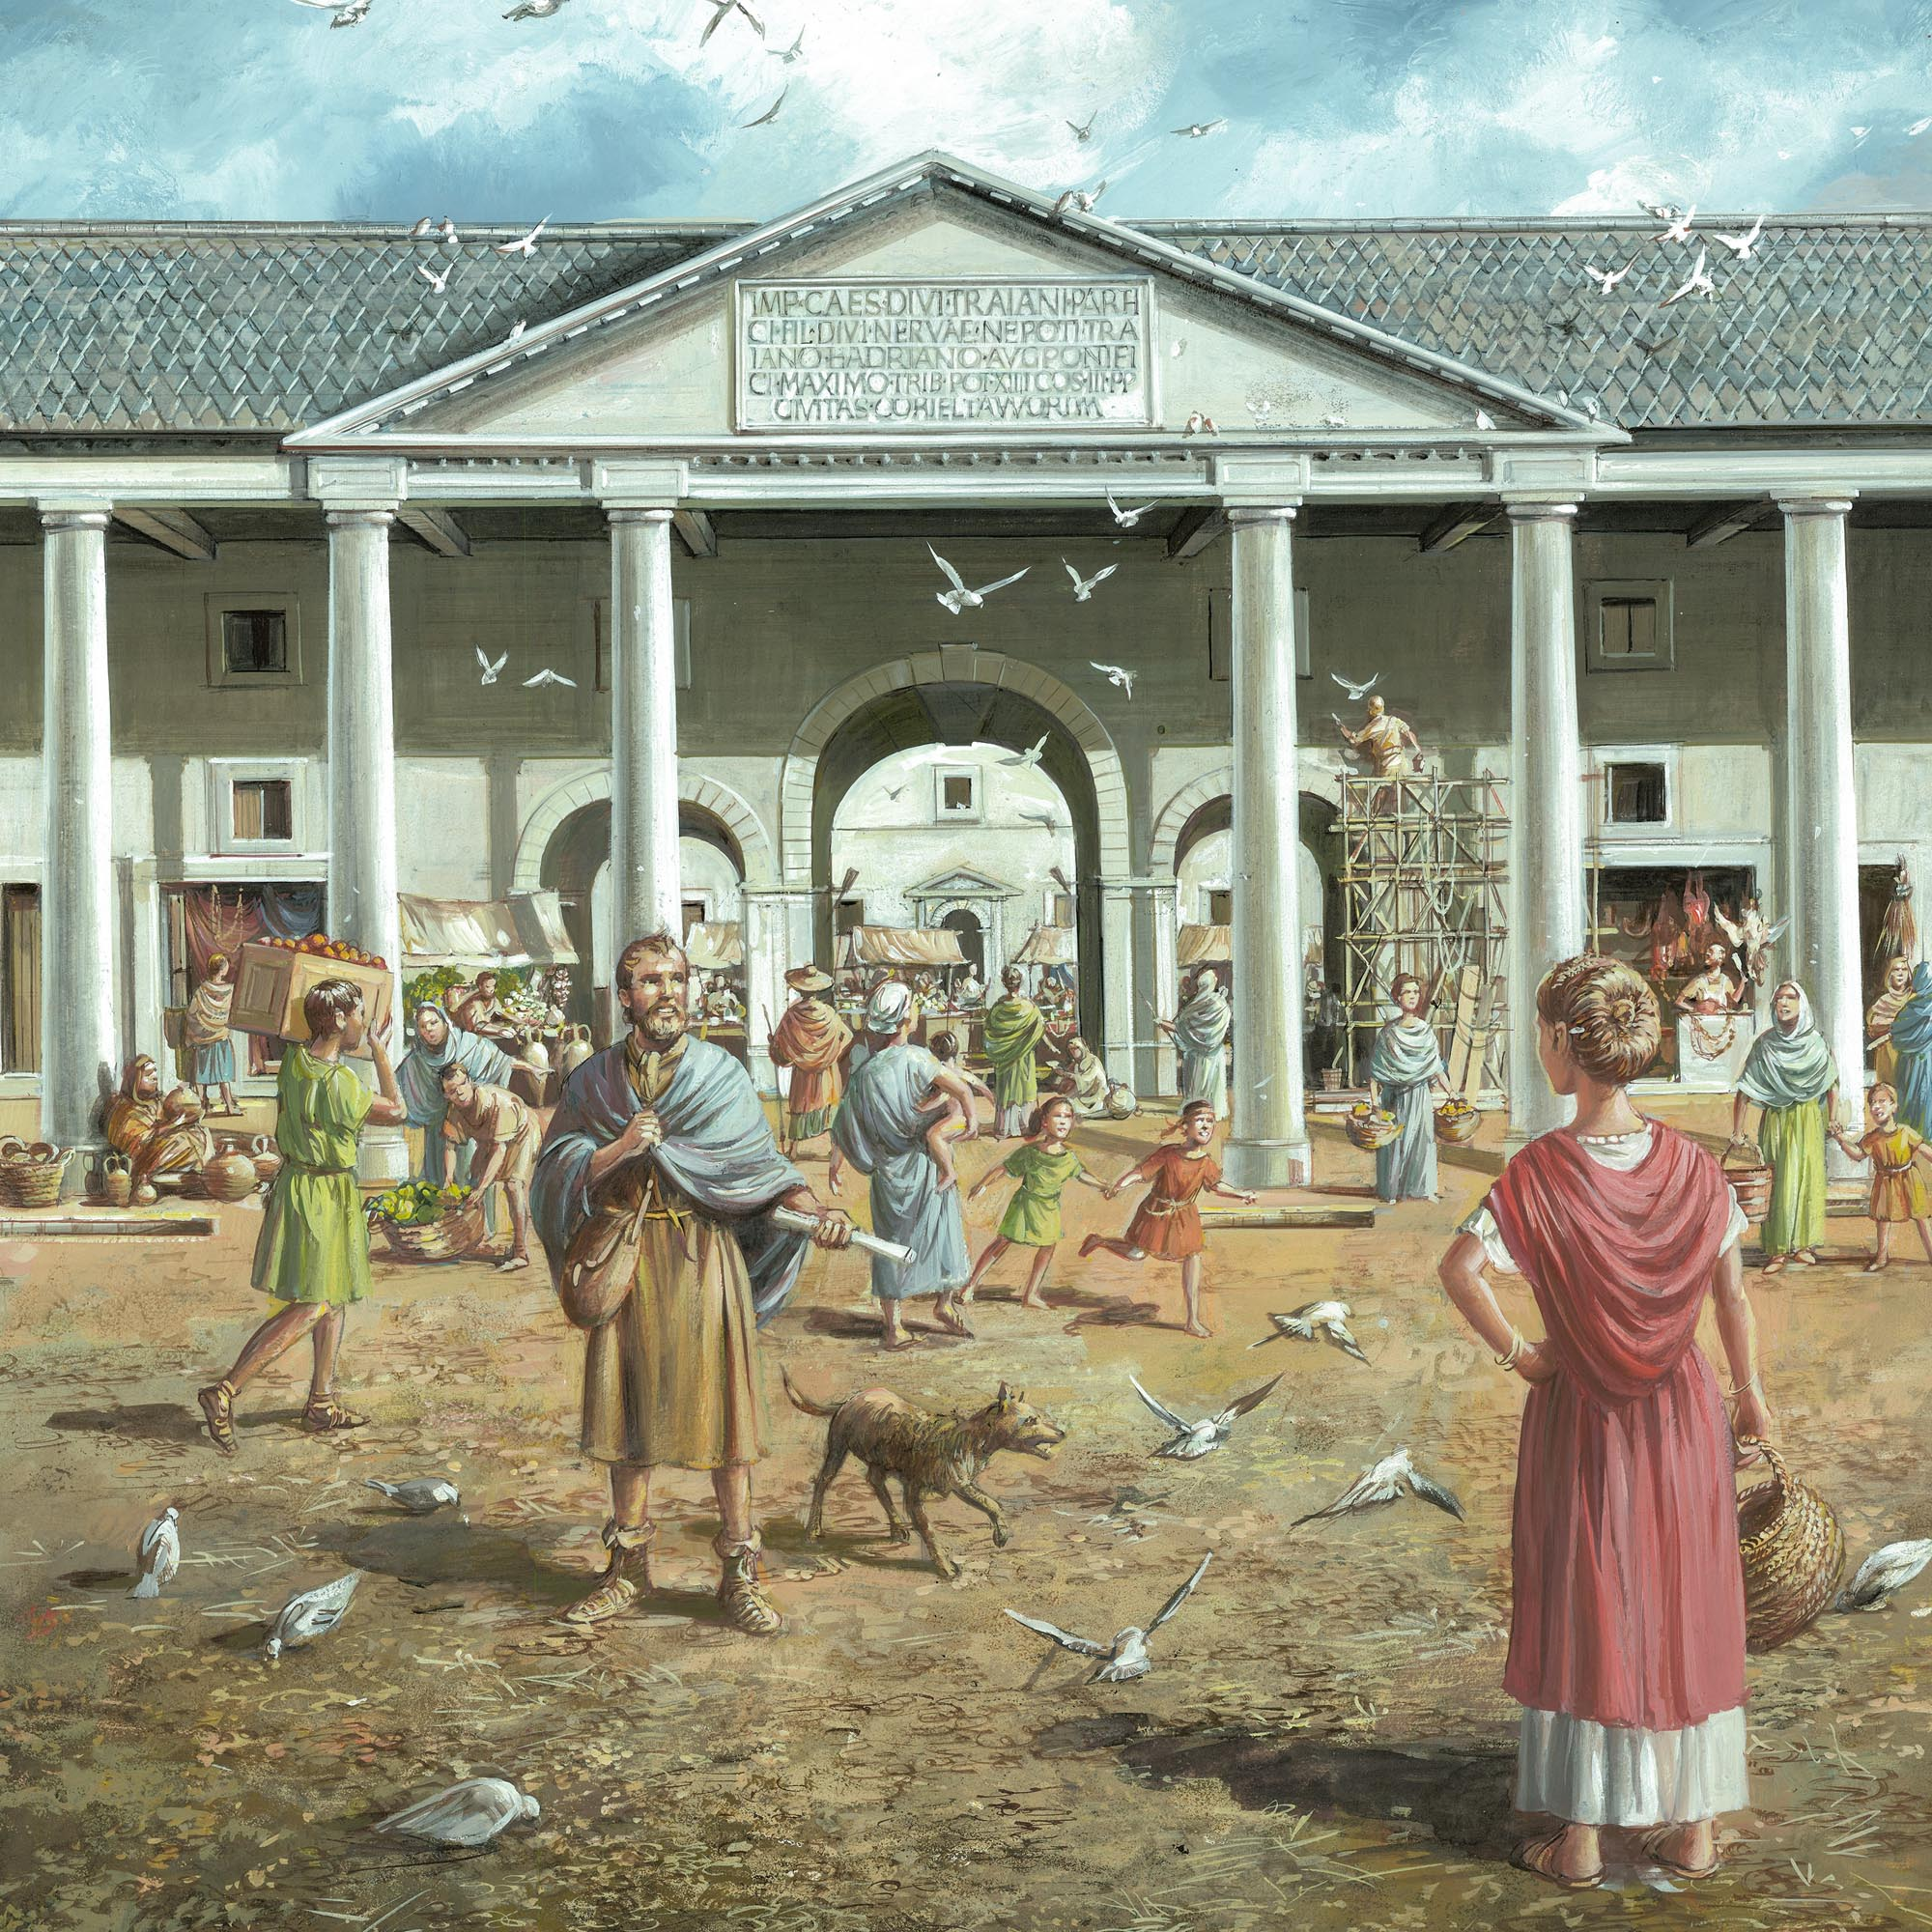 The entrance to the Roman forum as it may have looked during the 2nd and 3rdc century CE - Mike Codd / Leicester Arts and Museums Service